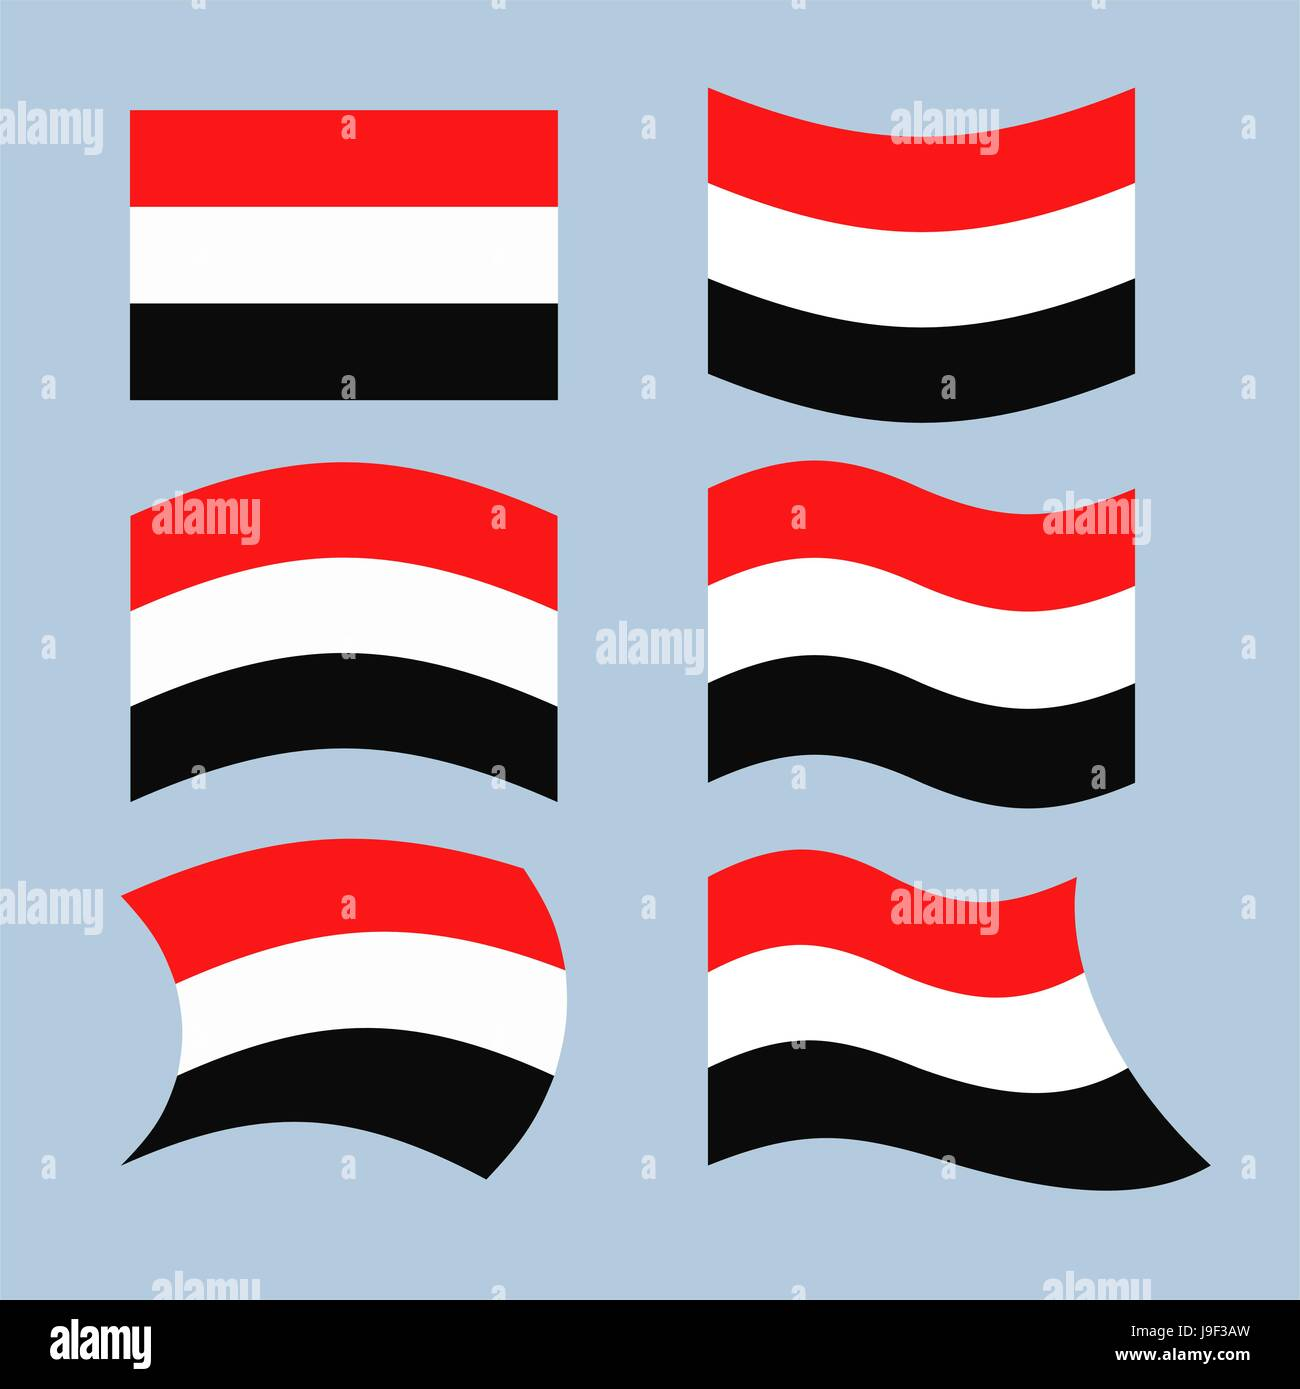 Yemen flag. Set of flags of Republic of Yemen in various forms. Developing Yemeni state flag in South-West Asia - Stock Vector